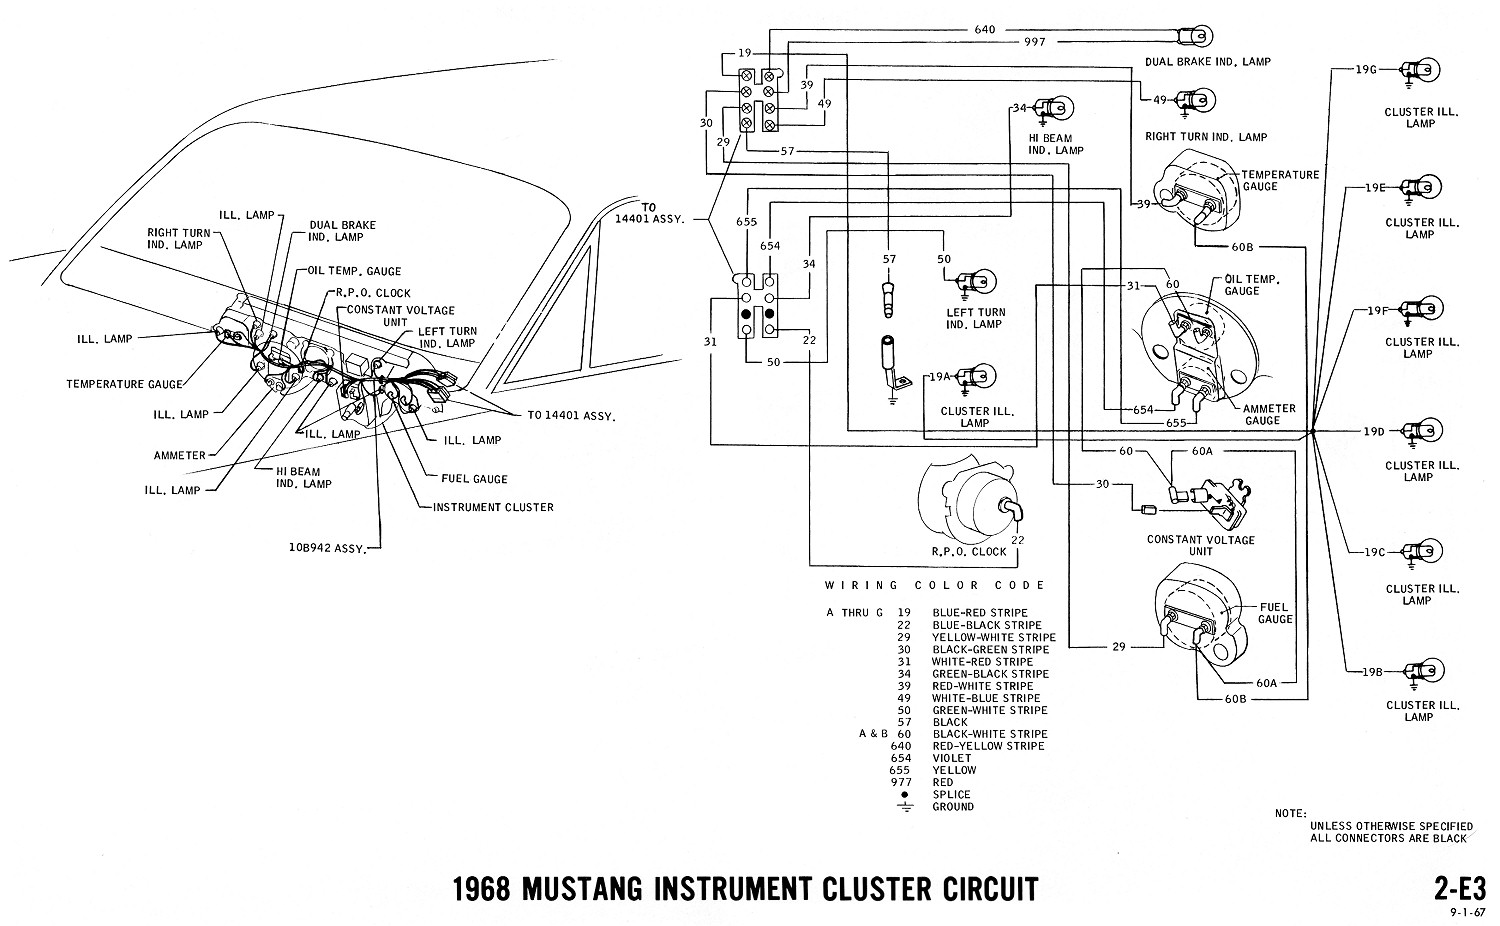 Gmc Wiper Switch Wiring Diagram Manual Of Gm 1968 Mustang Diagrams Evolving Software